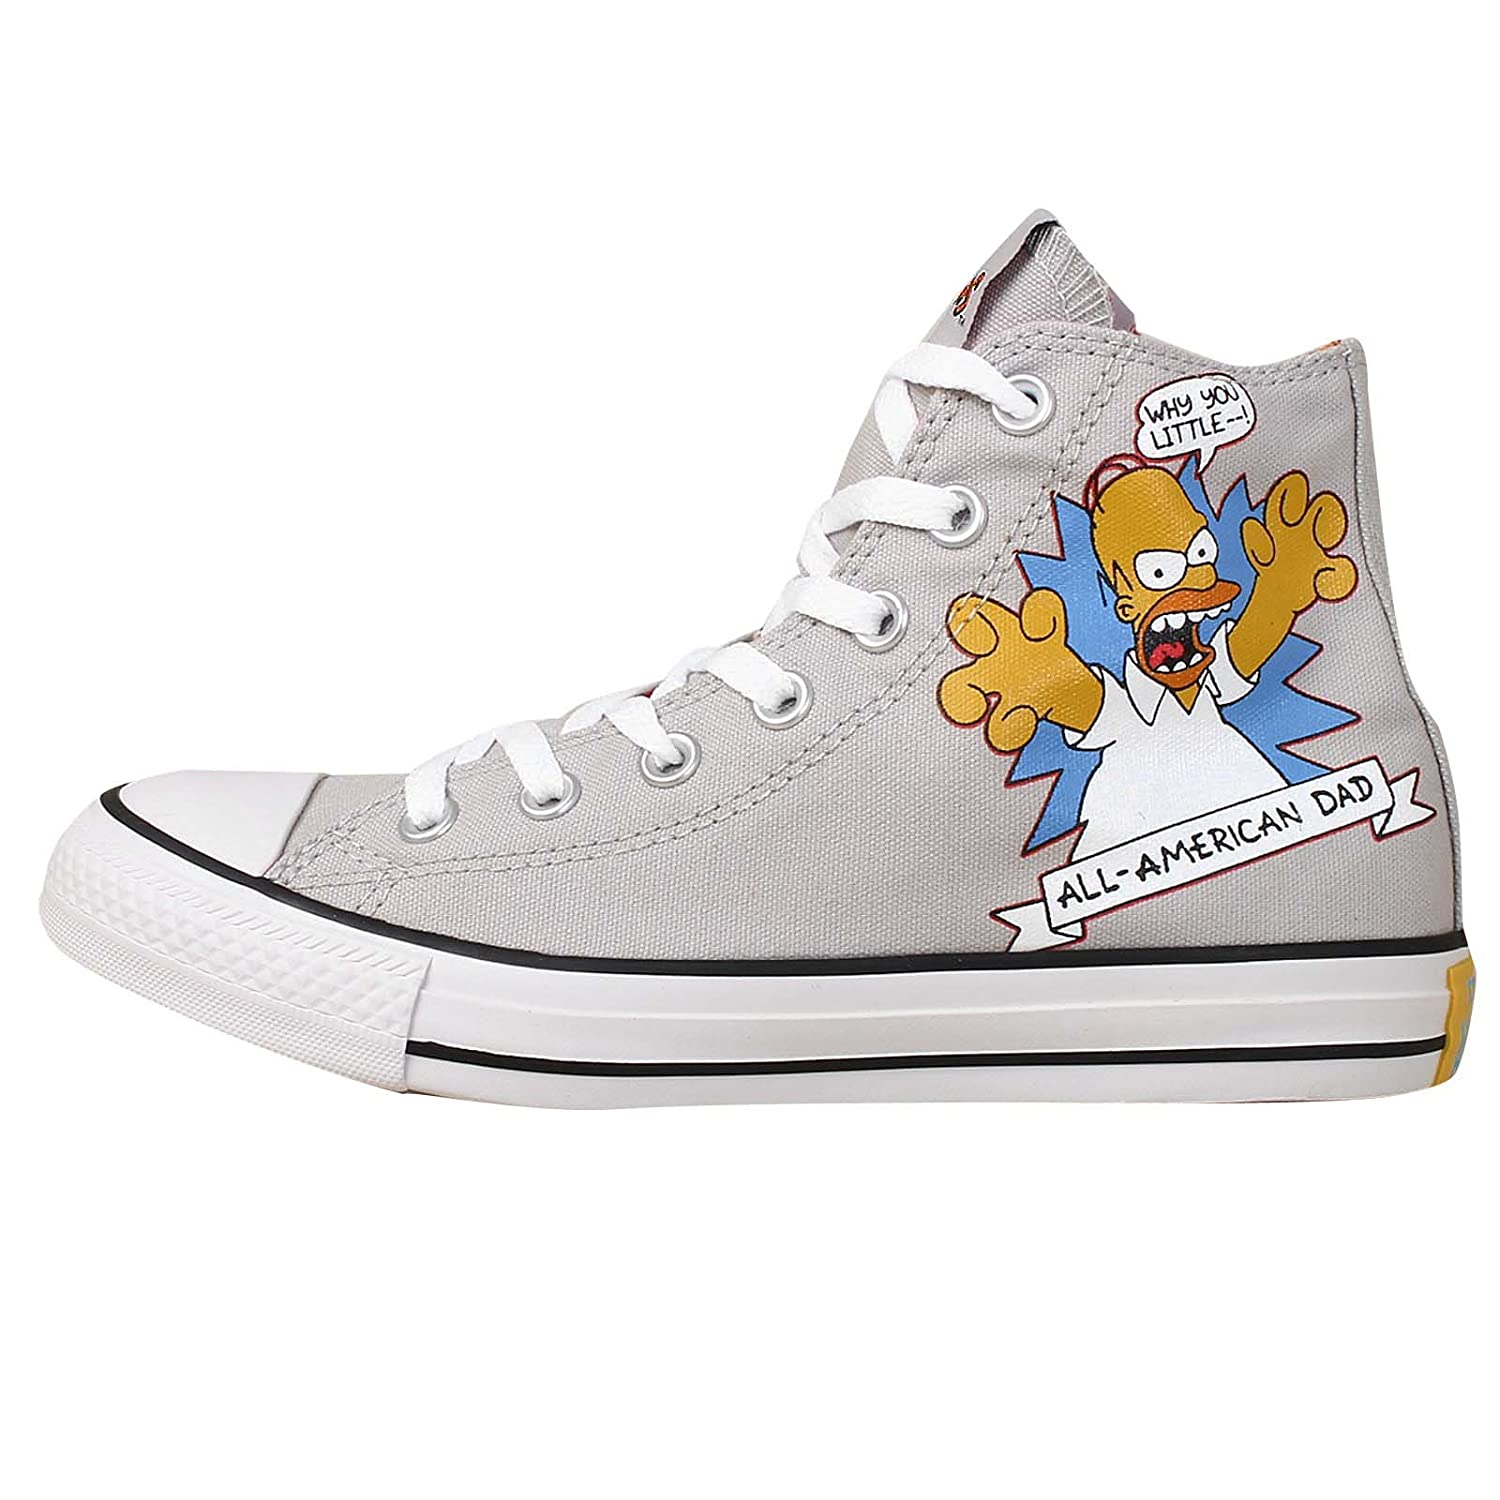 Converse Chucks All Star Bestellnummer 146808 Gr.  EU  37,5 UK  5 Farbe  Grau Limited Edition THE SIMPSONS